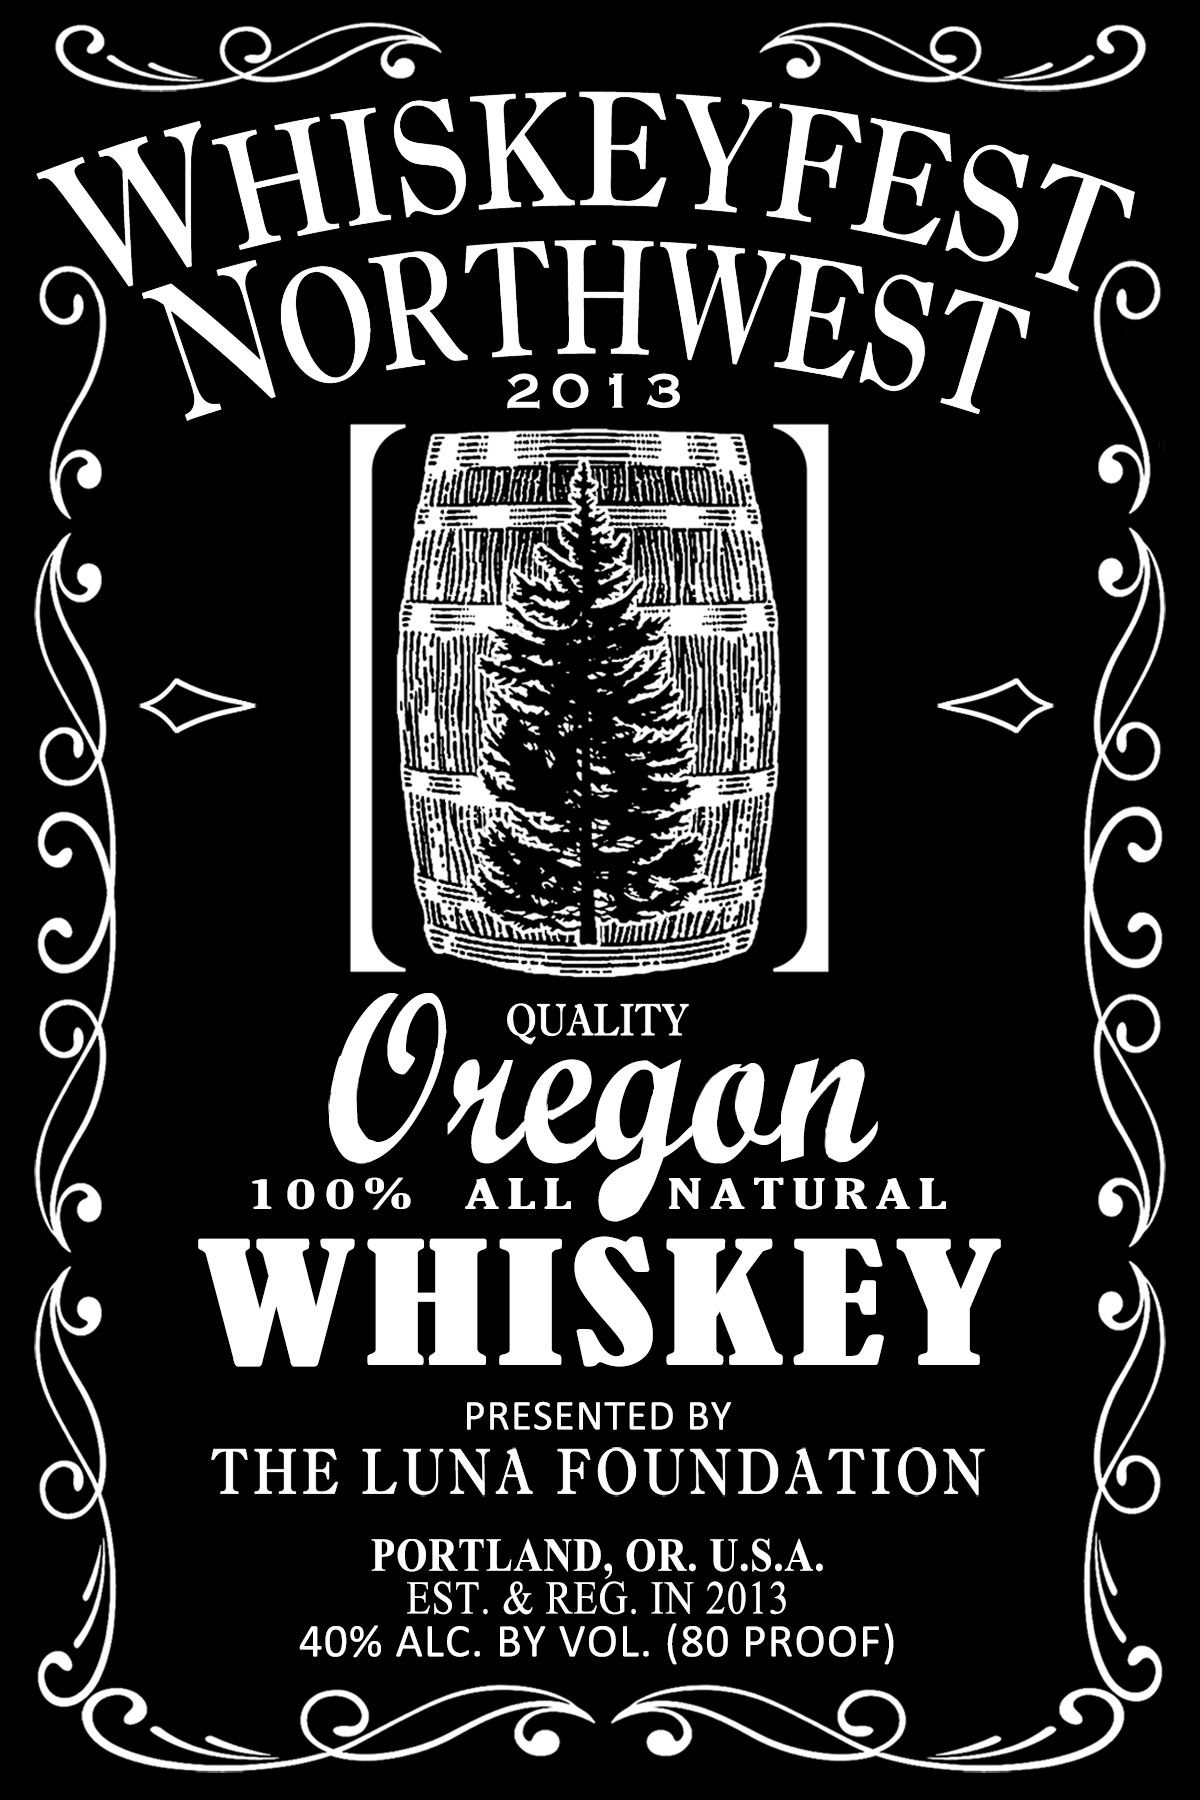 Whiskeyfest Northwest label